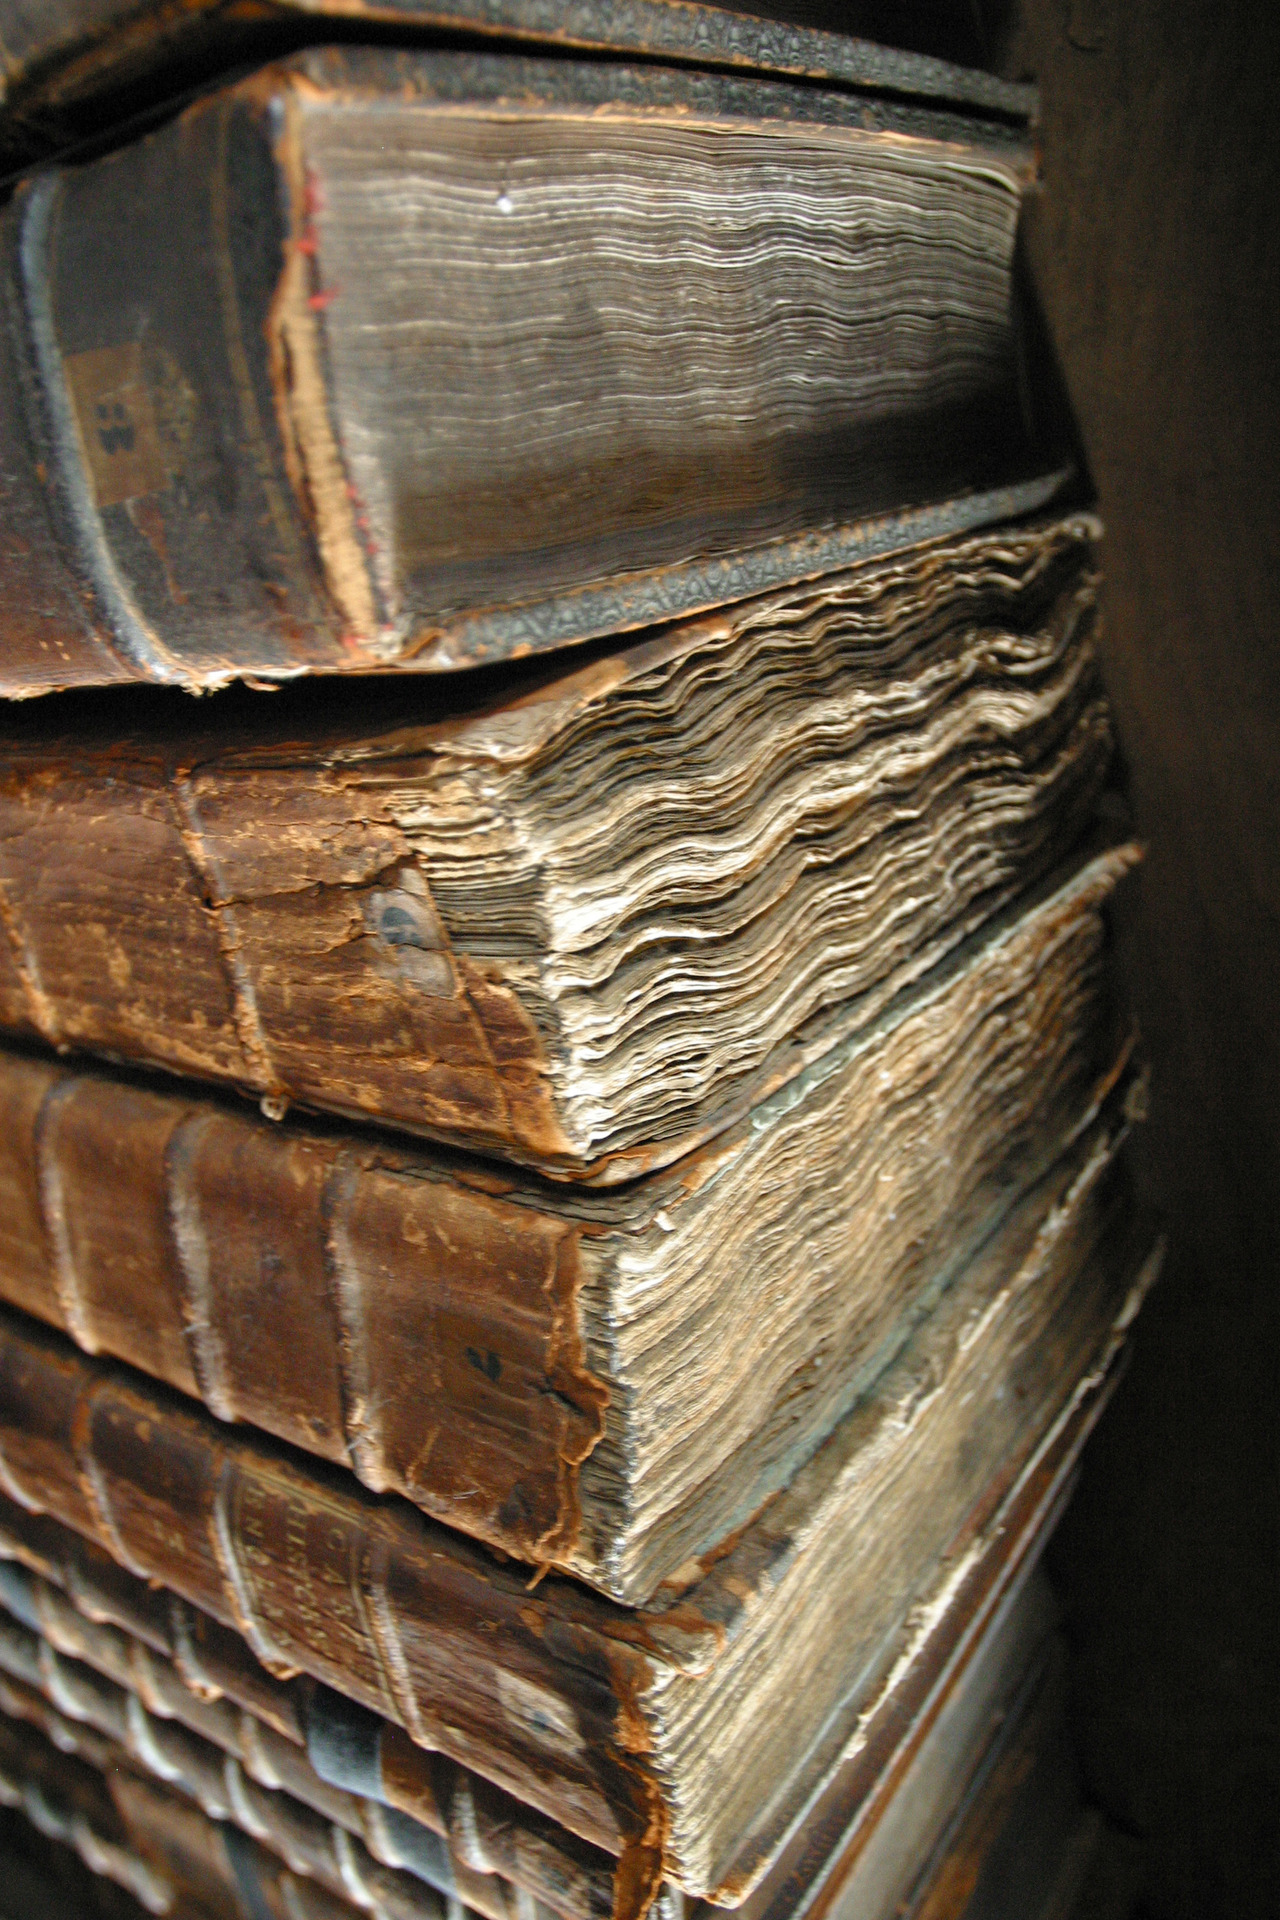 Old_book_bindings_large